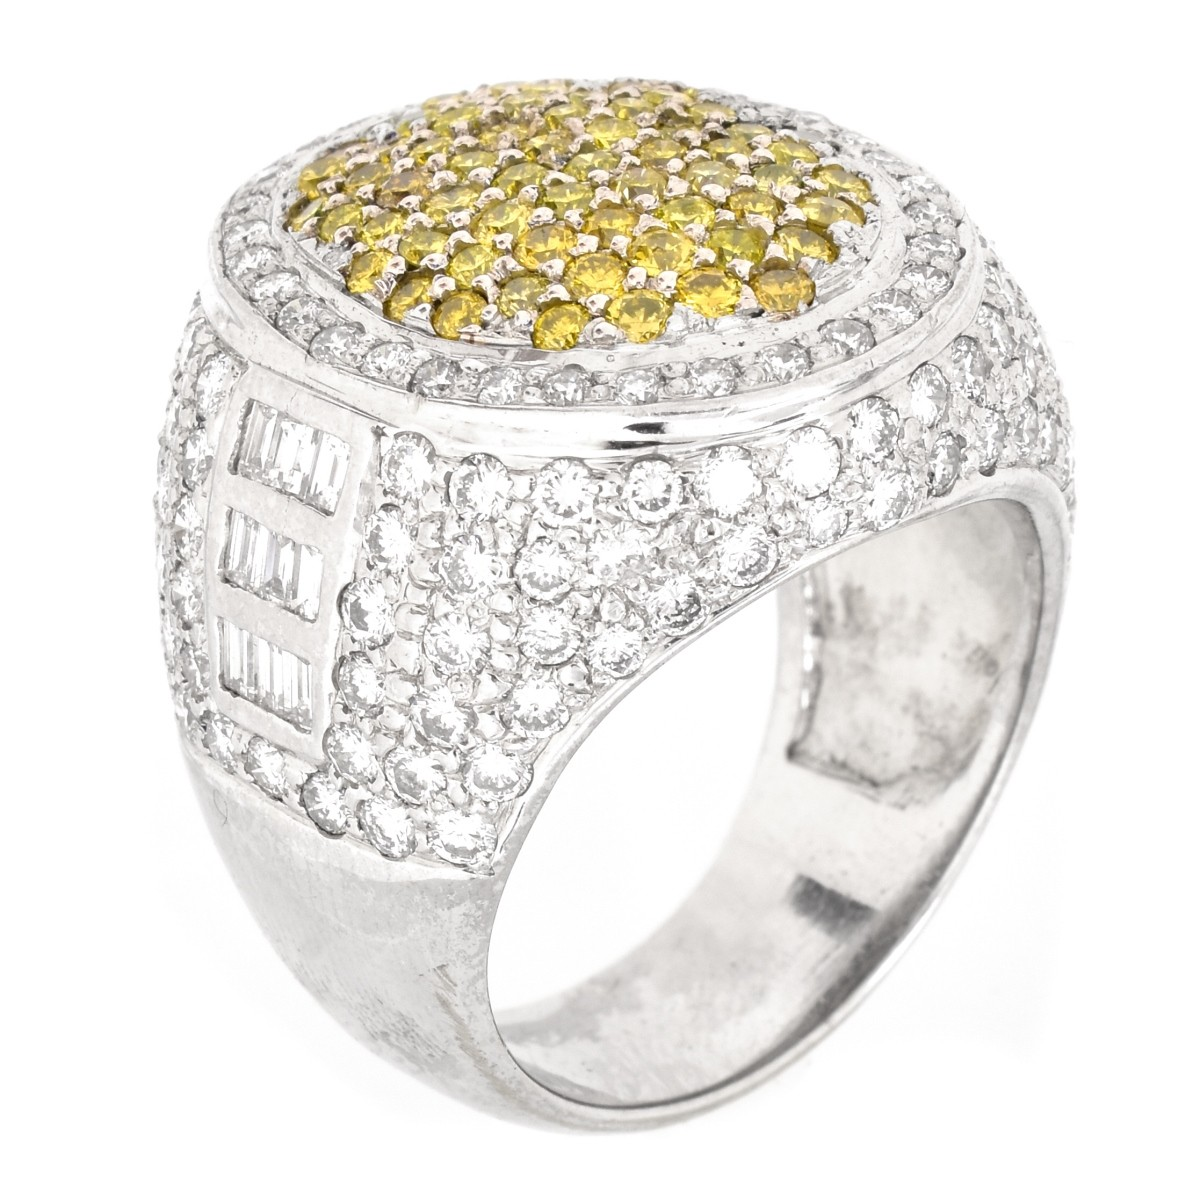 Man's Approx. 5.0 Carat Diamond and 14K Gold Ring